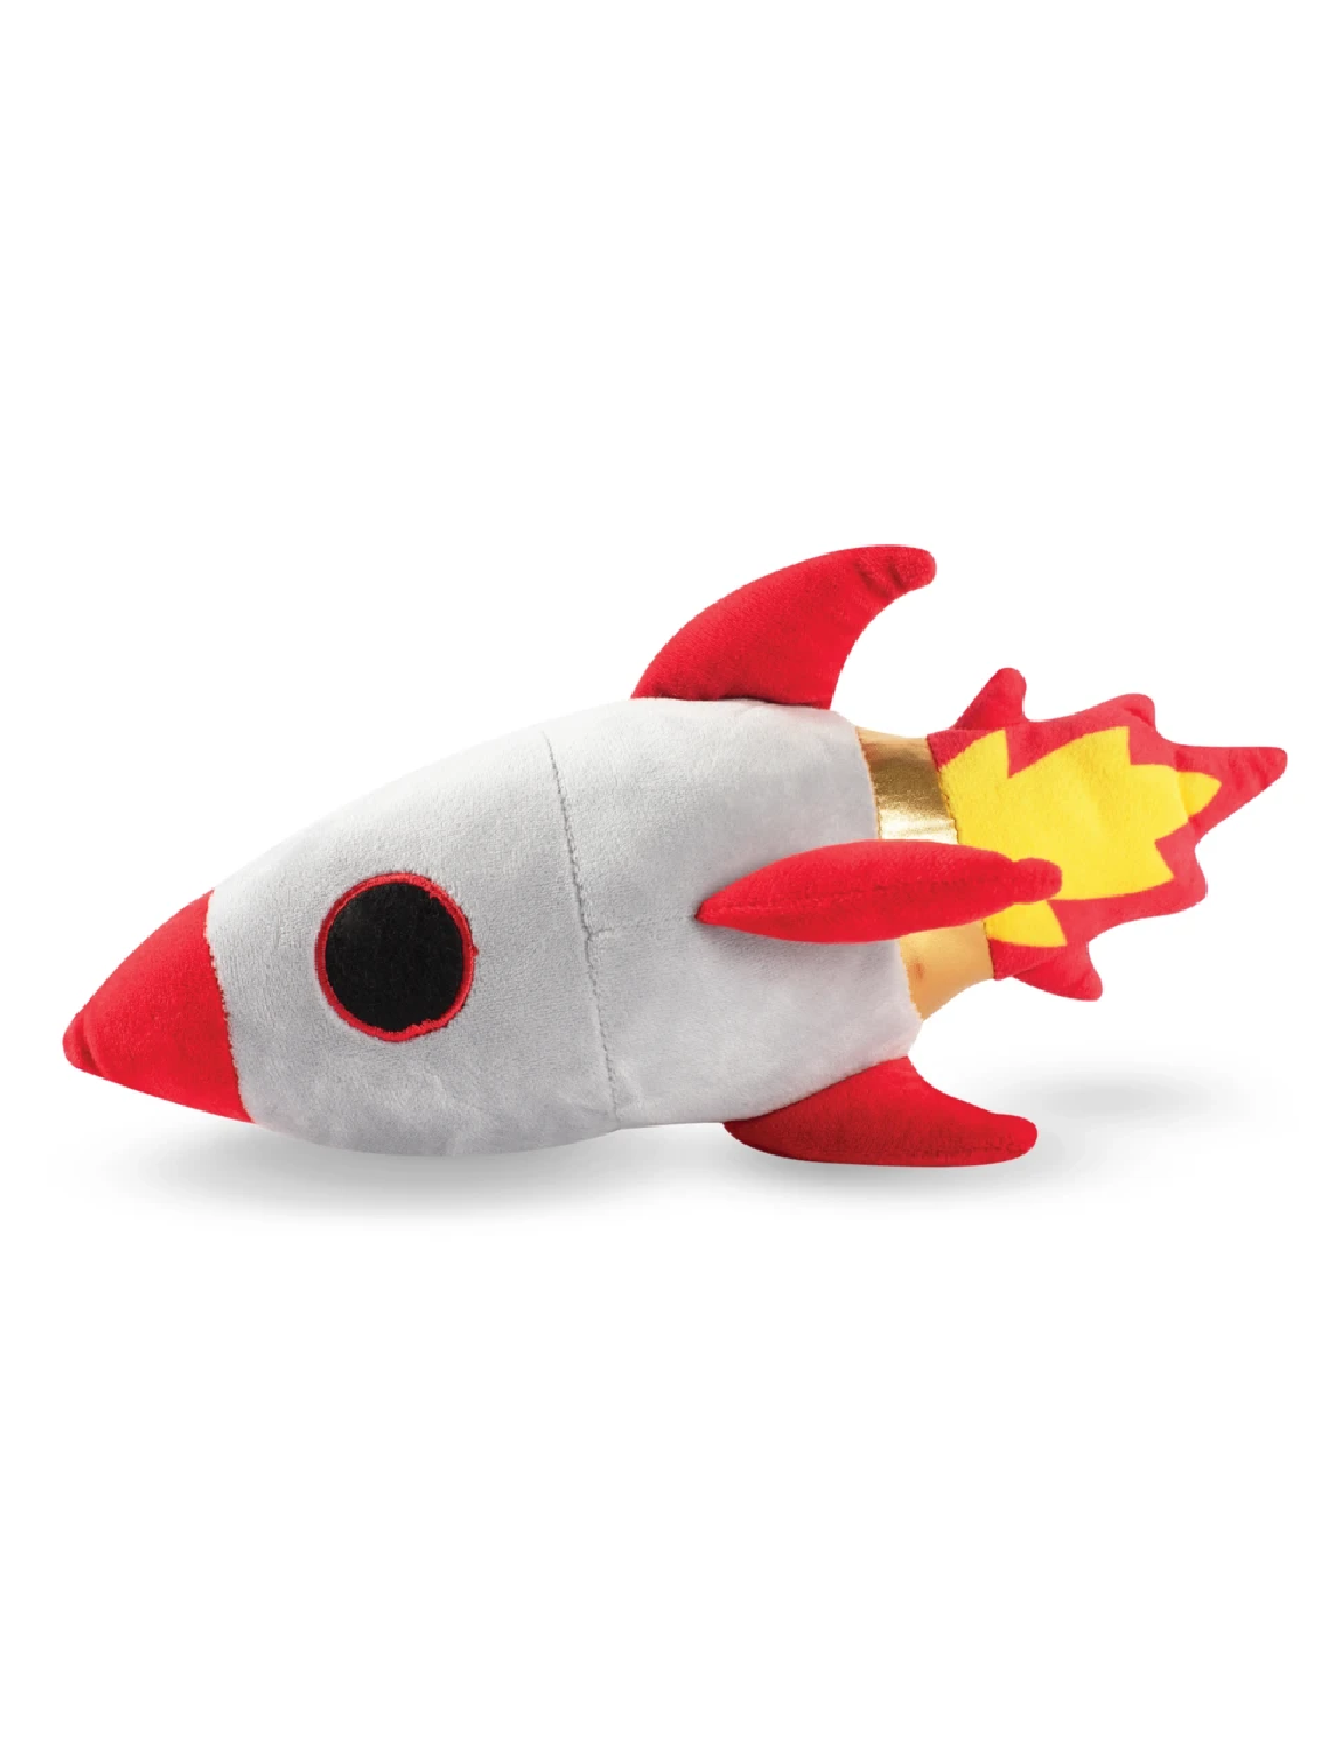 Fringe Studio Space Mission Rocket Ship Dog Squeaky Plush Toy | Perromart Online Pet Store Singapore